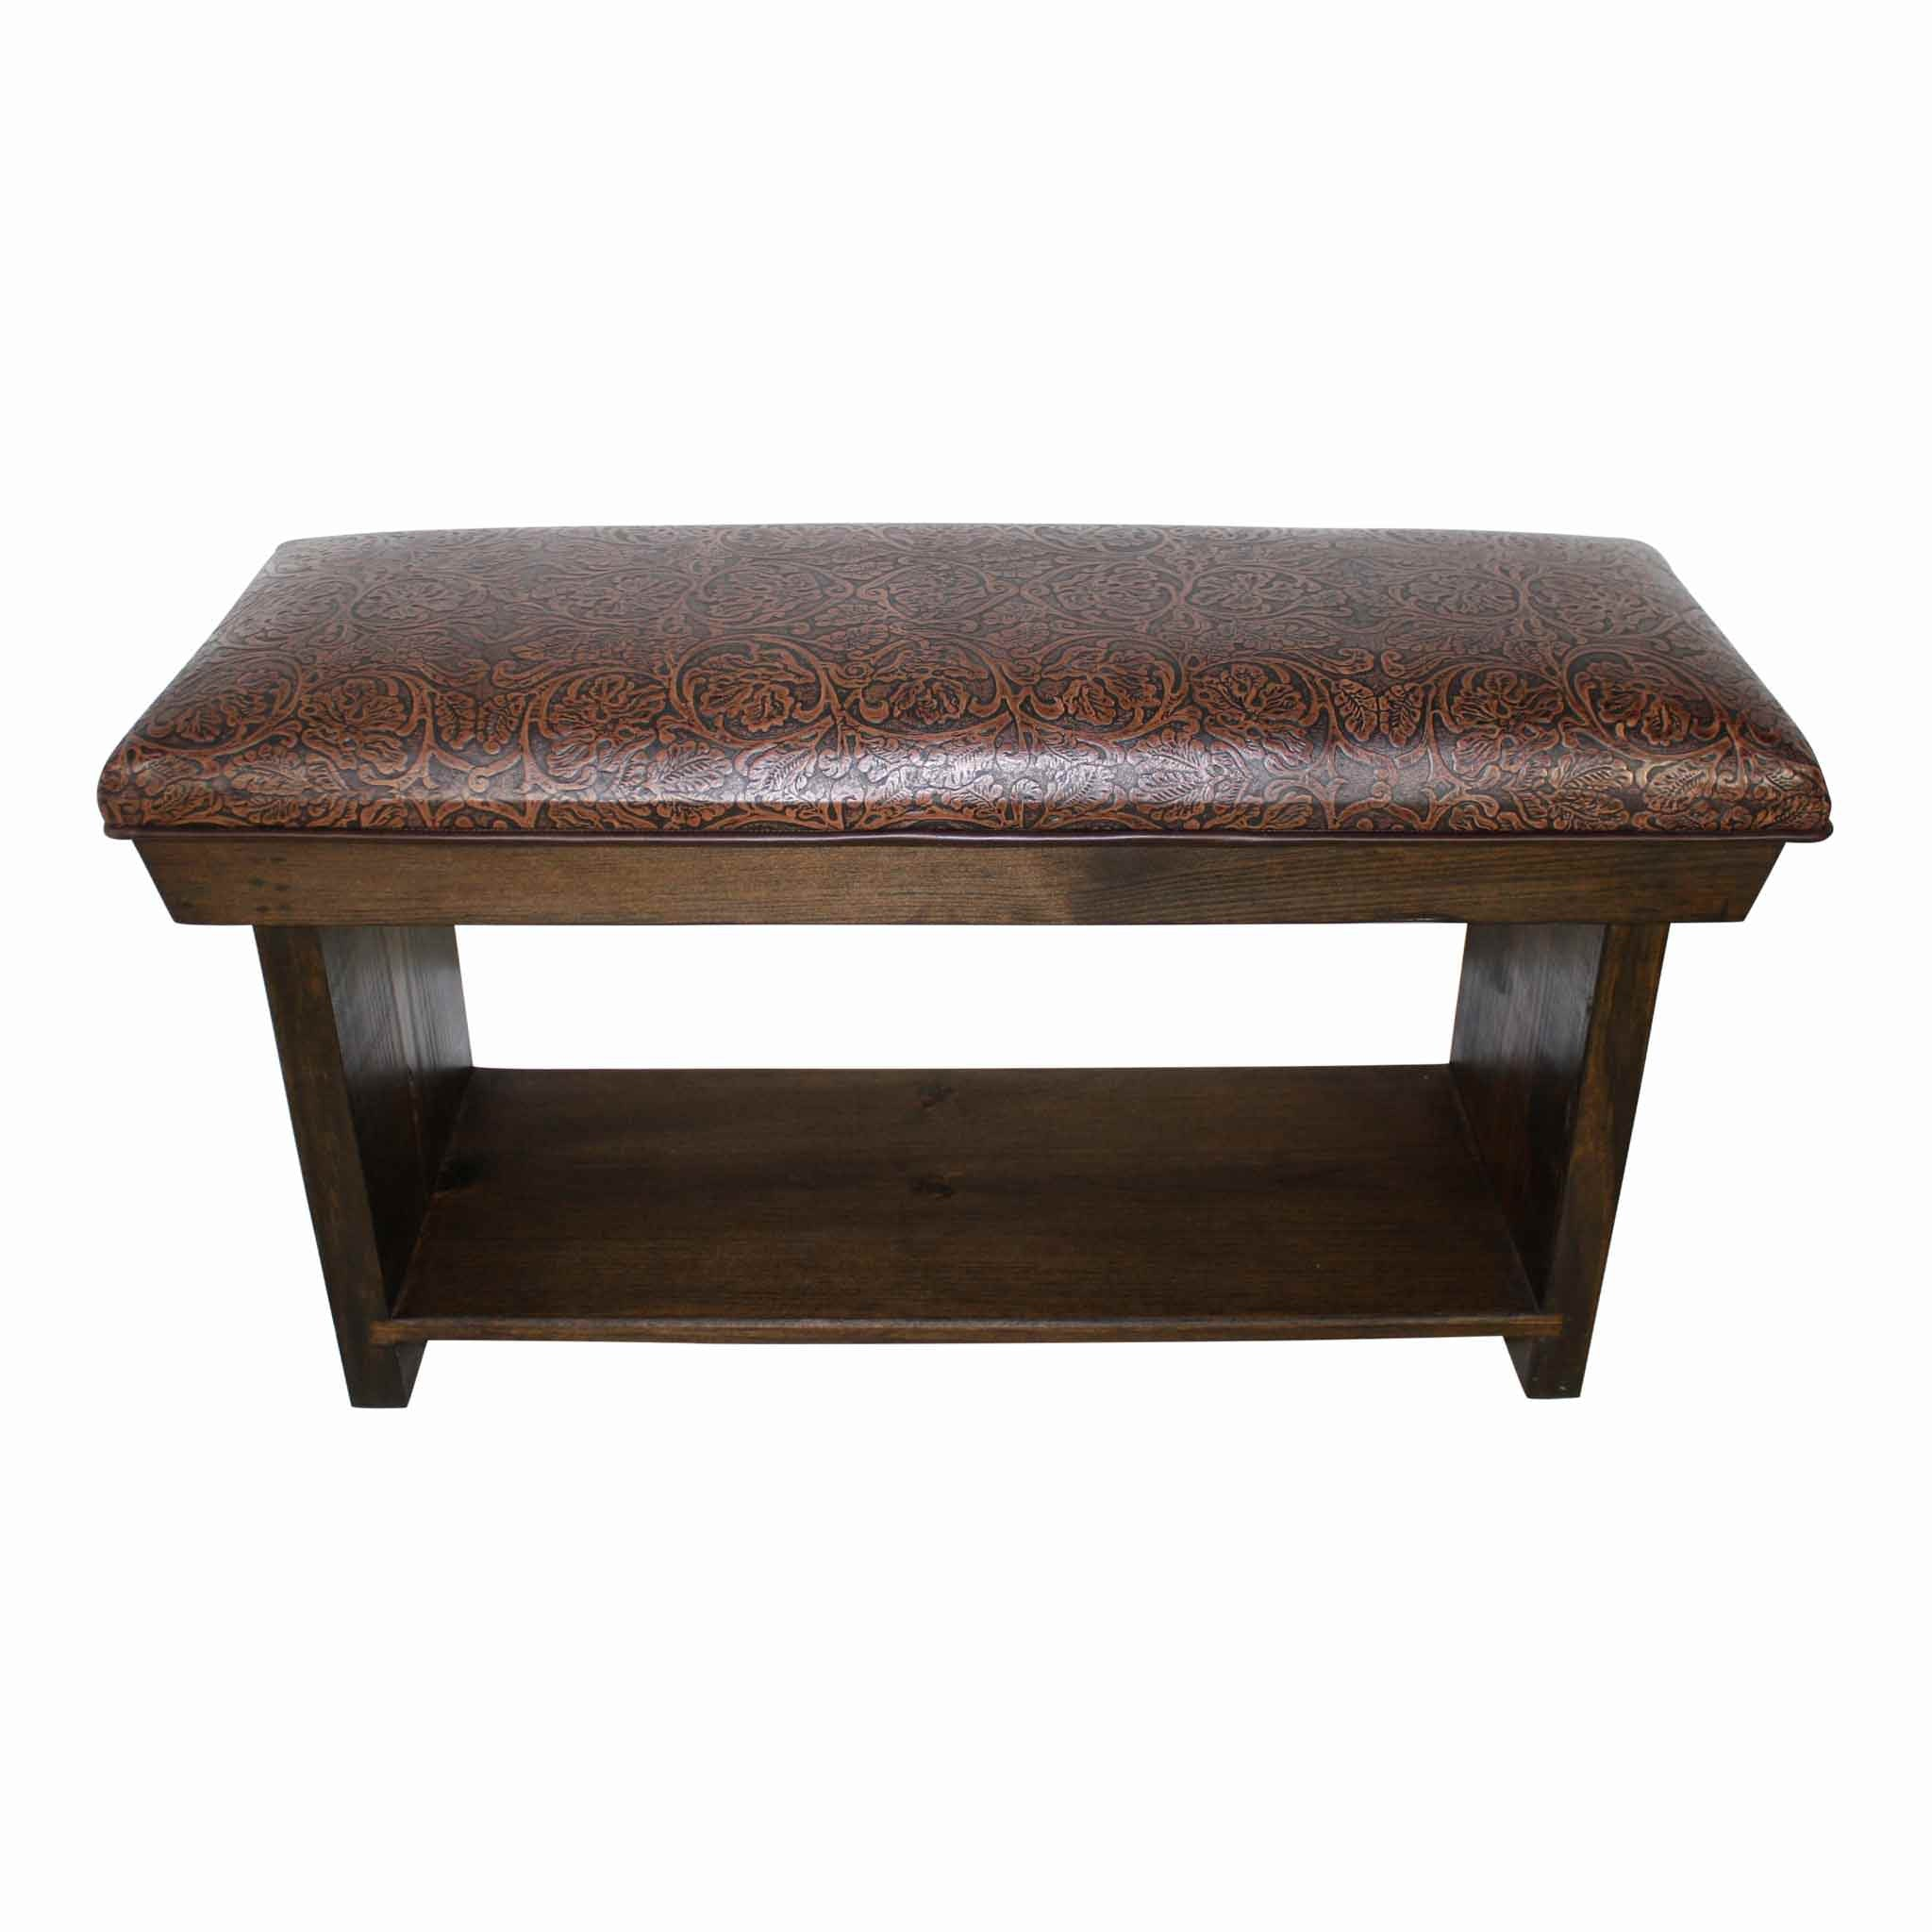 Cowboy Chocolate Pressed Leather Bench with Shelf